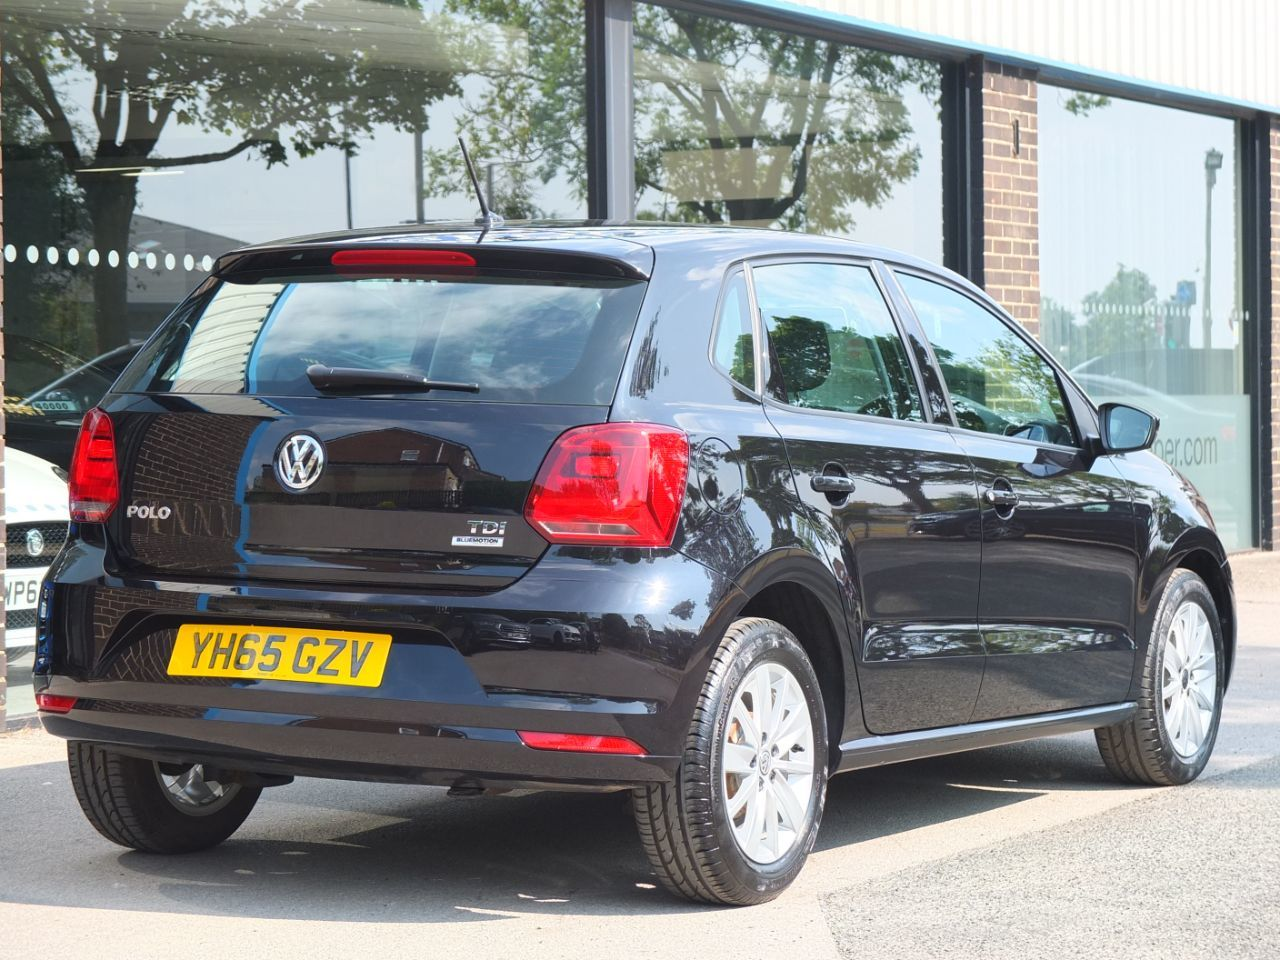 Volkswagen Polo 1.4 TDI SE 5 door Hatchback Diesel Deep Black Pearl